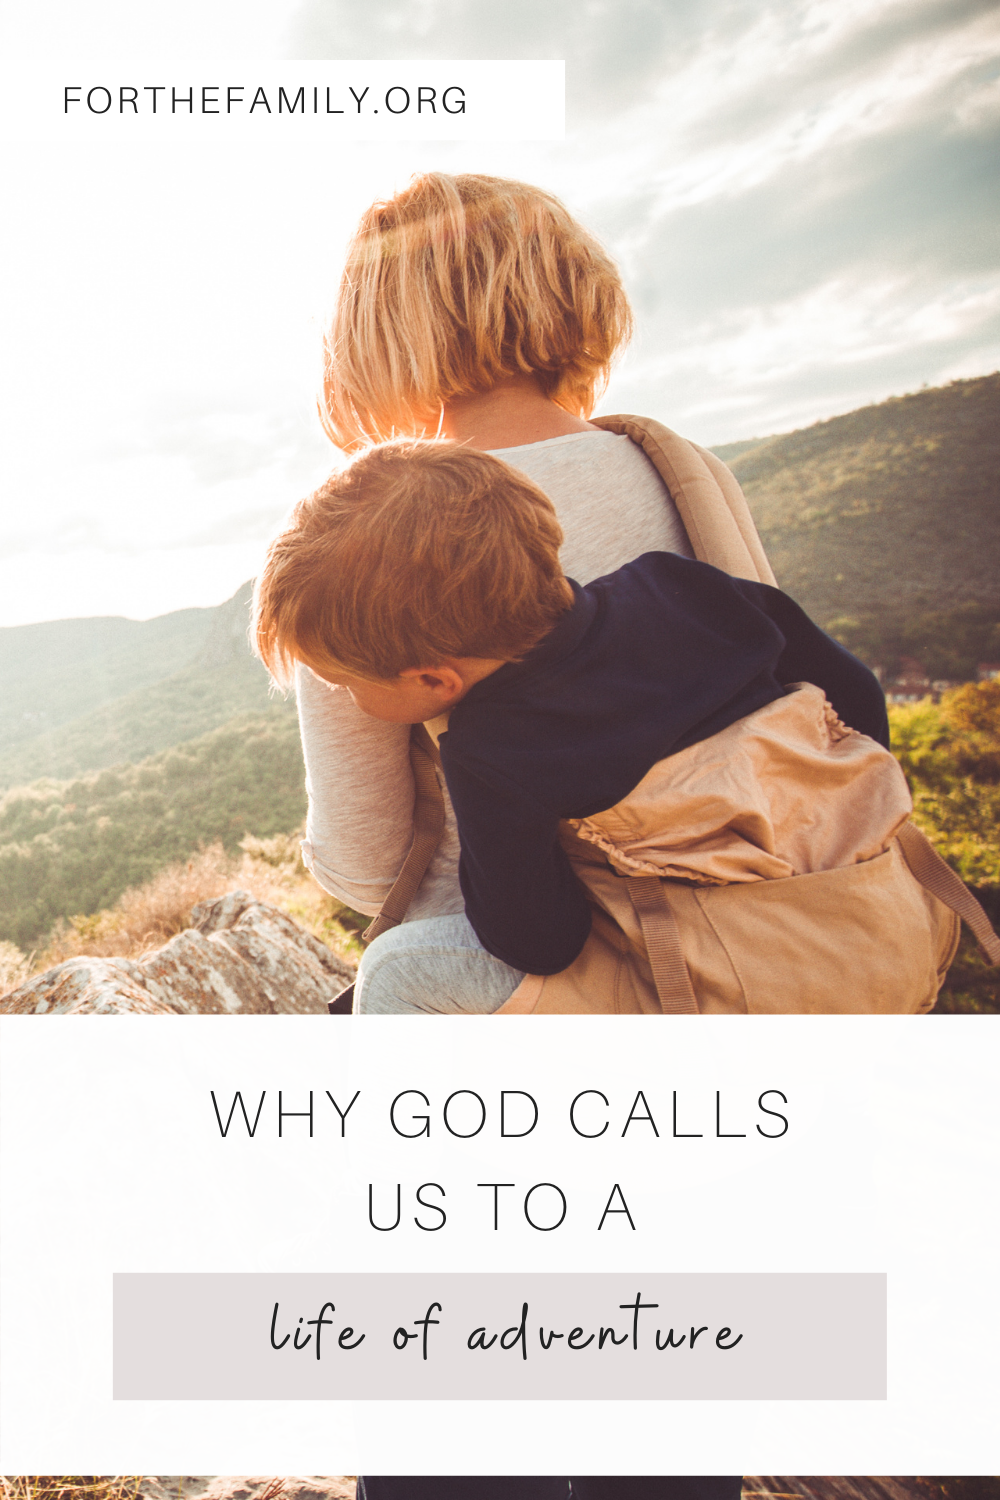 """Why God Calls Us to a Life of Adventure"" with stock image of woman and son hiking."